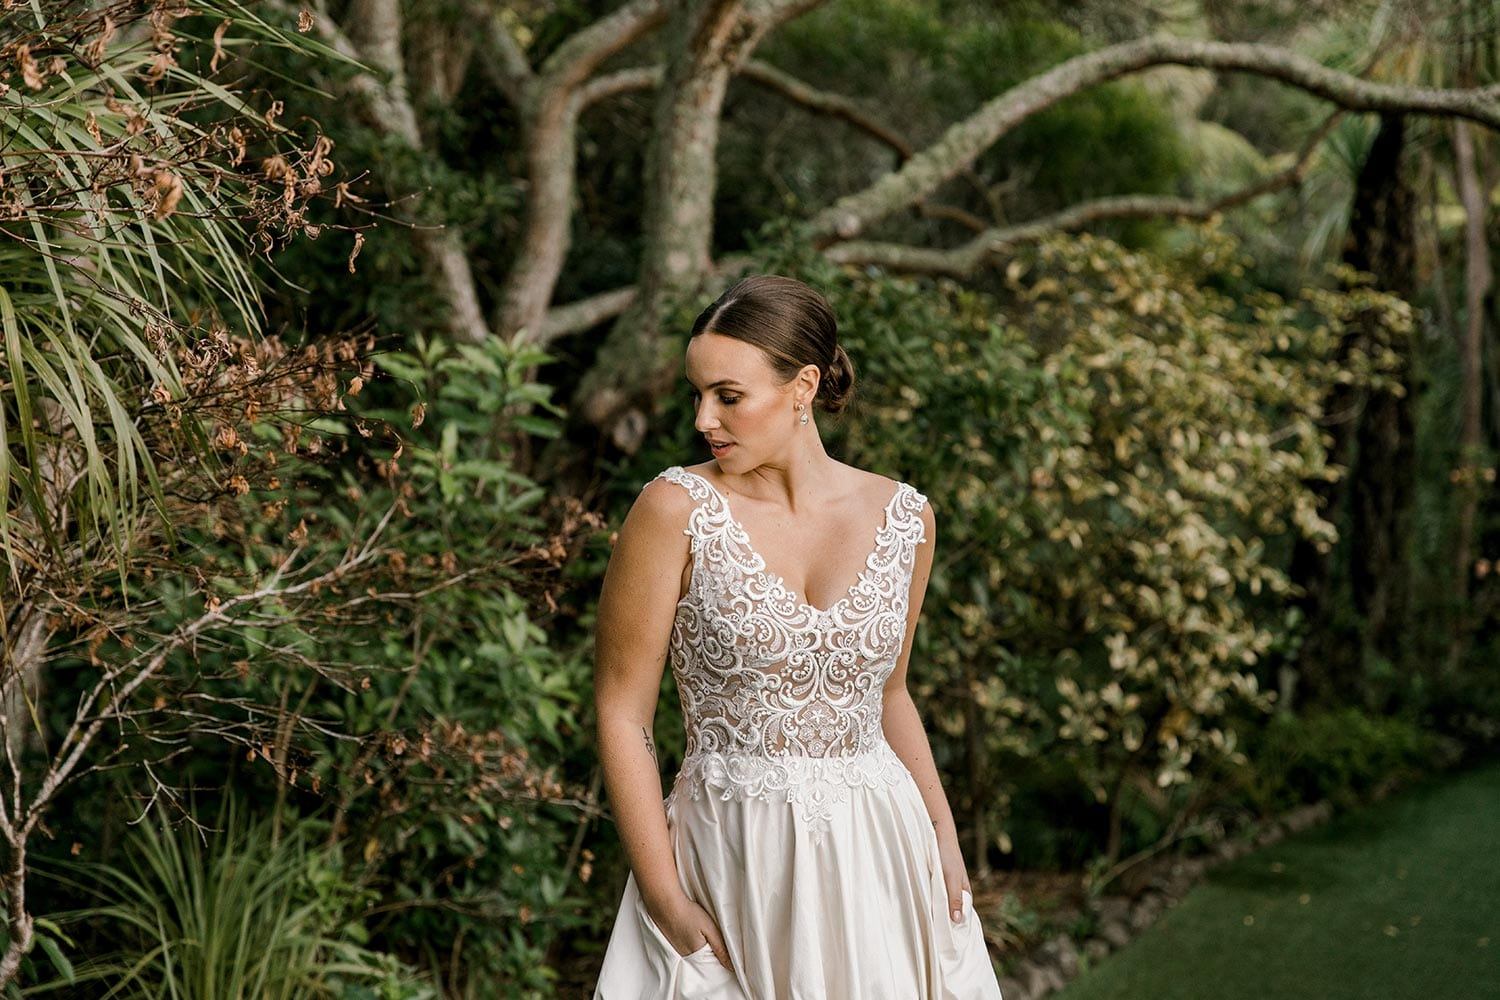 Ashleigh Wedding Dress from Vinka Design. Wedding dress with semi-sheer, richly embroidered fitted bodice on a nude base adorned with guipure lace. Dramatic silk dupion full skirt with side pockets. Close up detail of bodice with hands in skirt pockets, photographed at Tui Hills by Emmaline Photography.